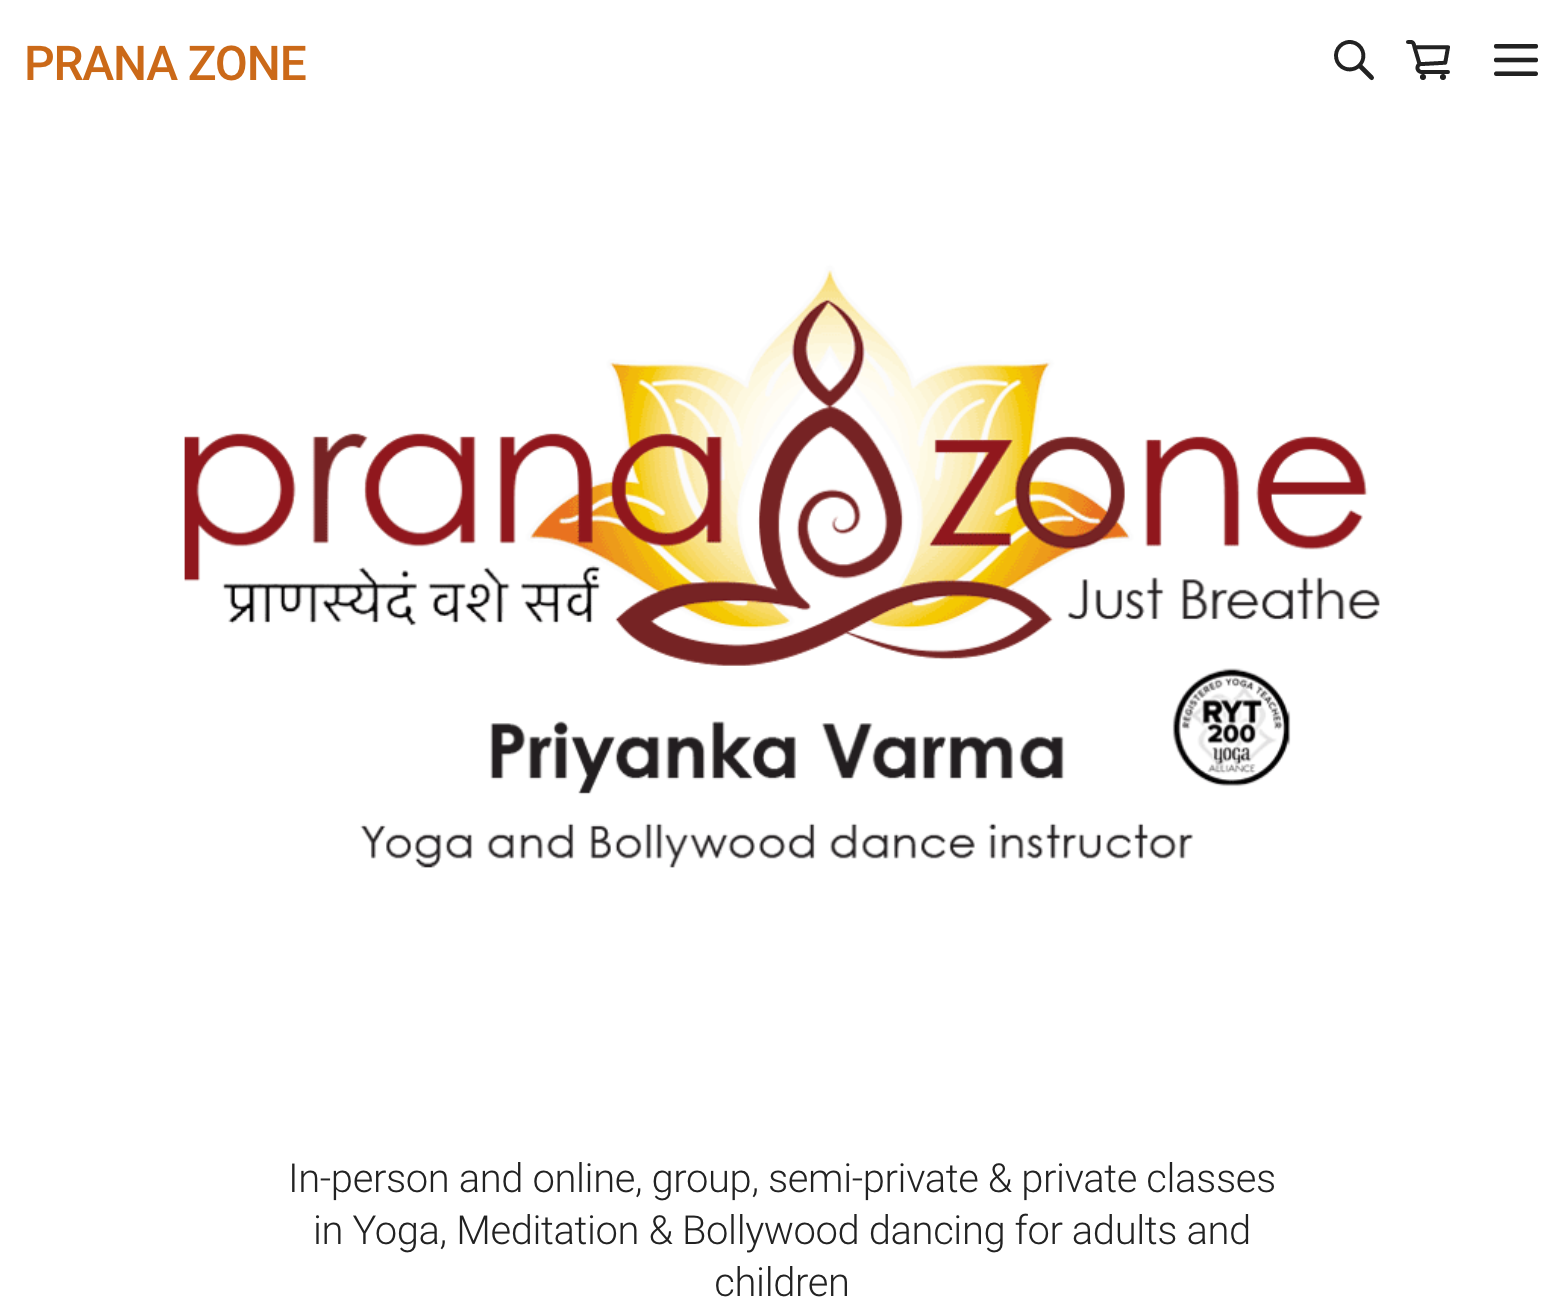 Prana Zone Website